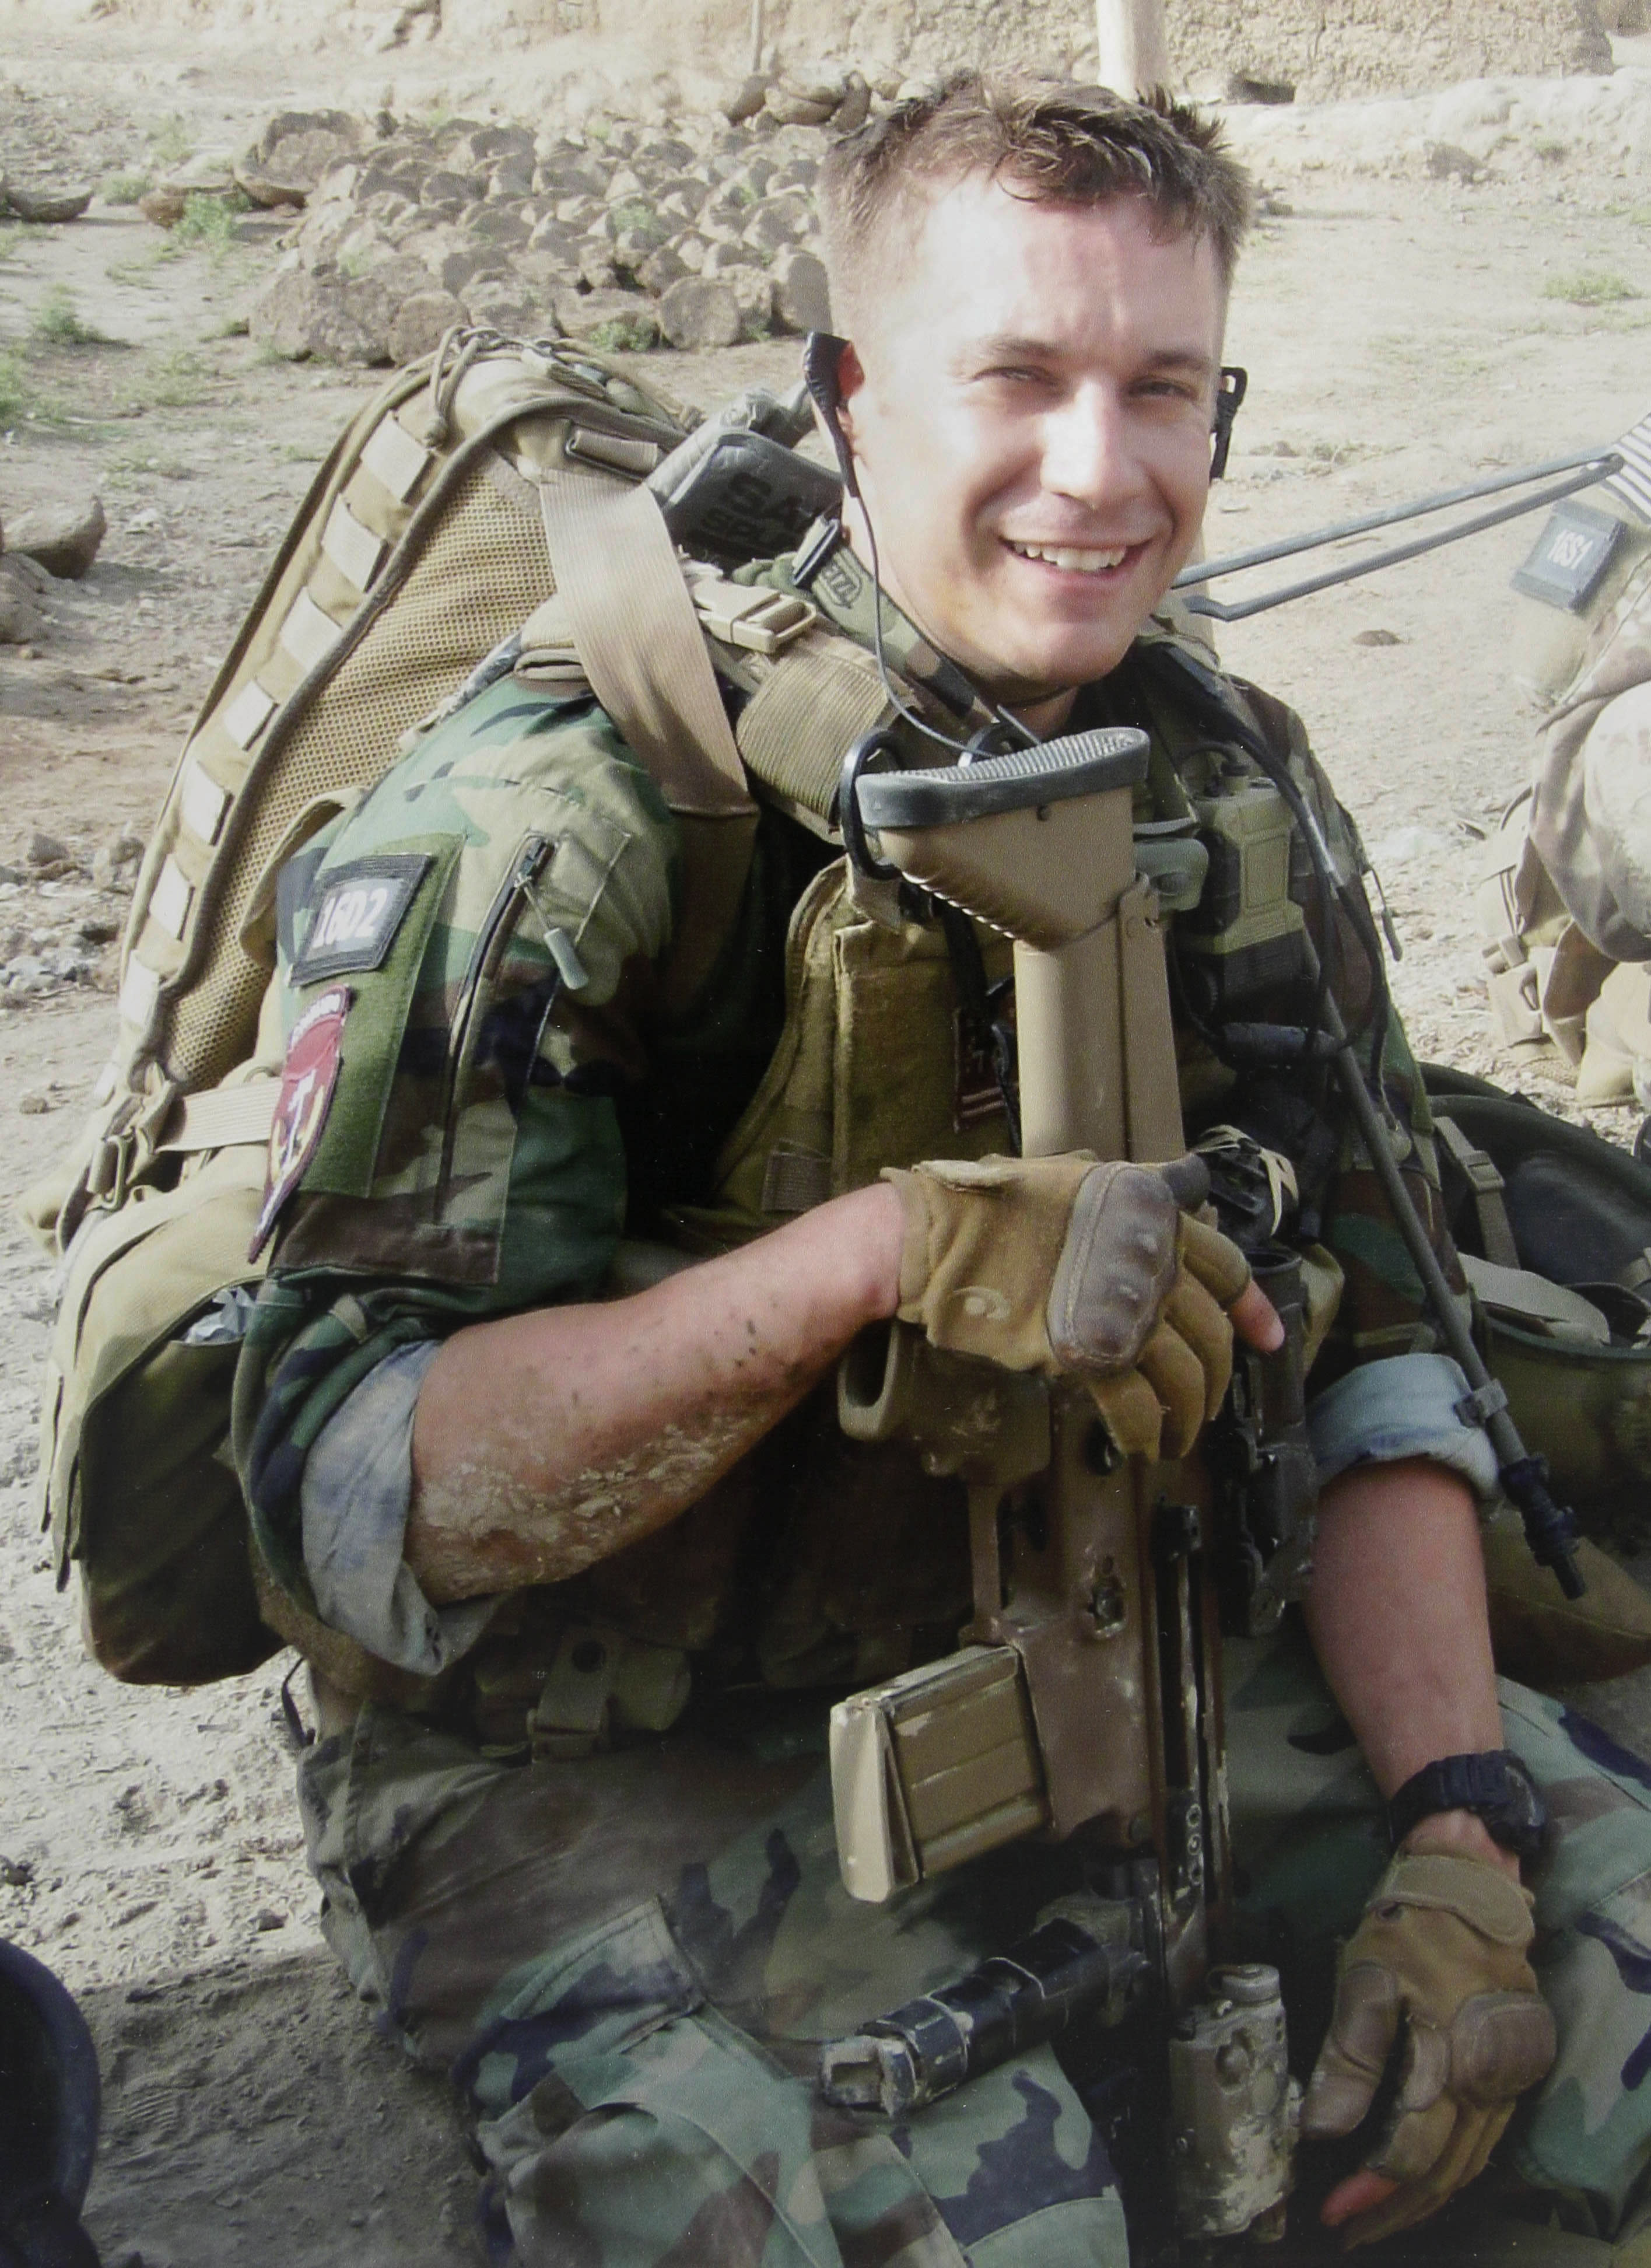 In this undated photo provided by the Wise family in Little Rock, Ark., U.S. Army Sgt. Ben Wise poses in a combat uniform. Wise died Jan. 15, 2012, in a hospital in Germany after being wounded in Afghanistan. (AP Photo/Courtesy of Wise Family)